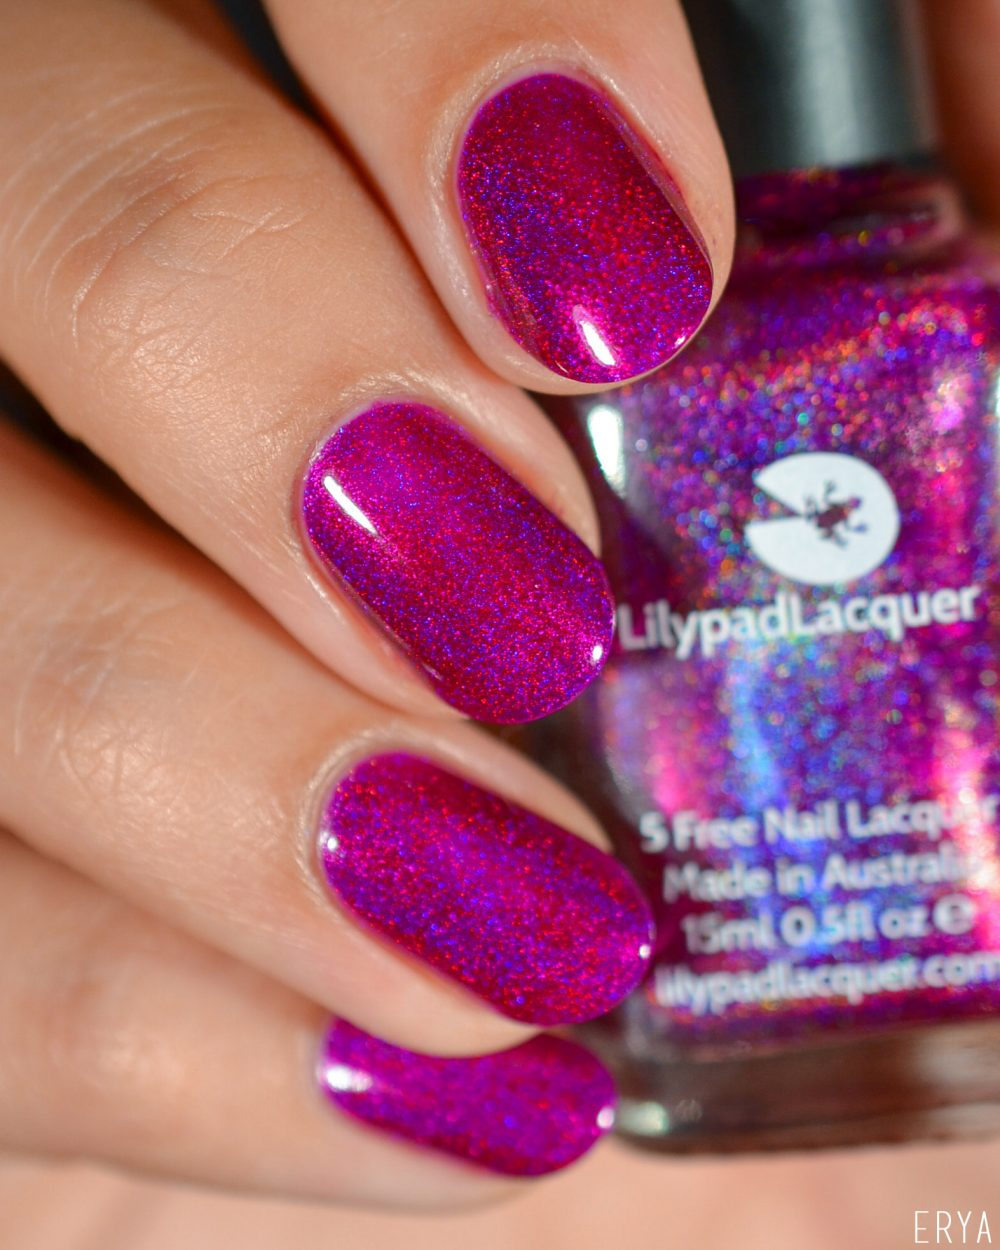 lilypad_lacquer-beet_this-6